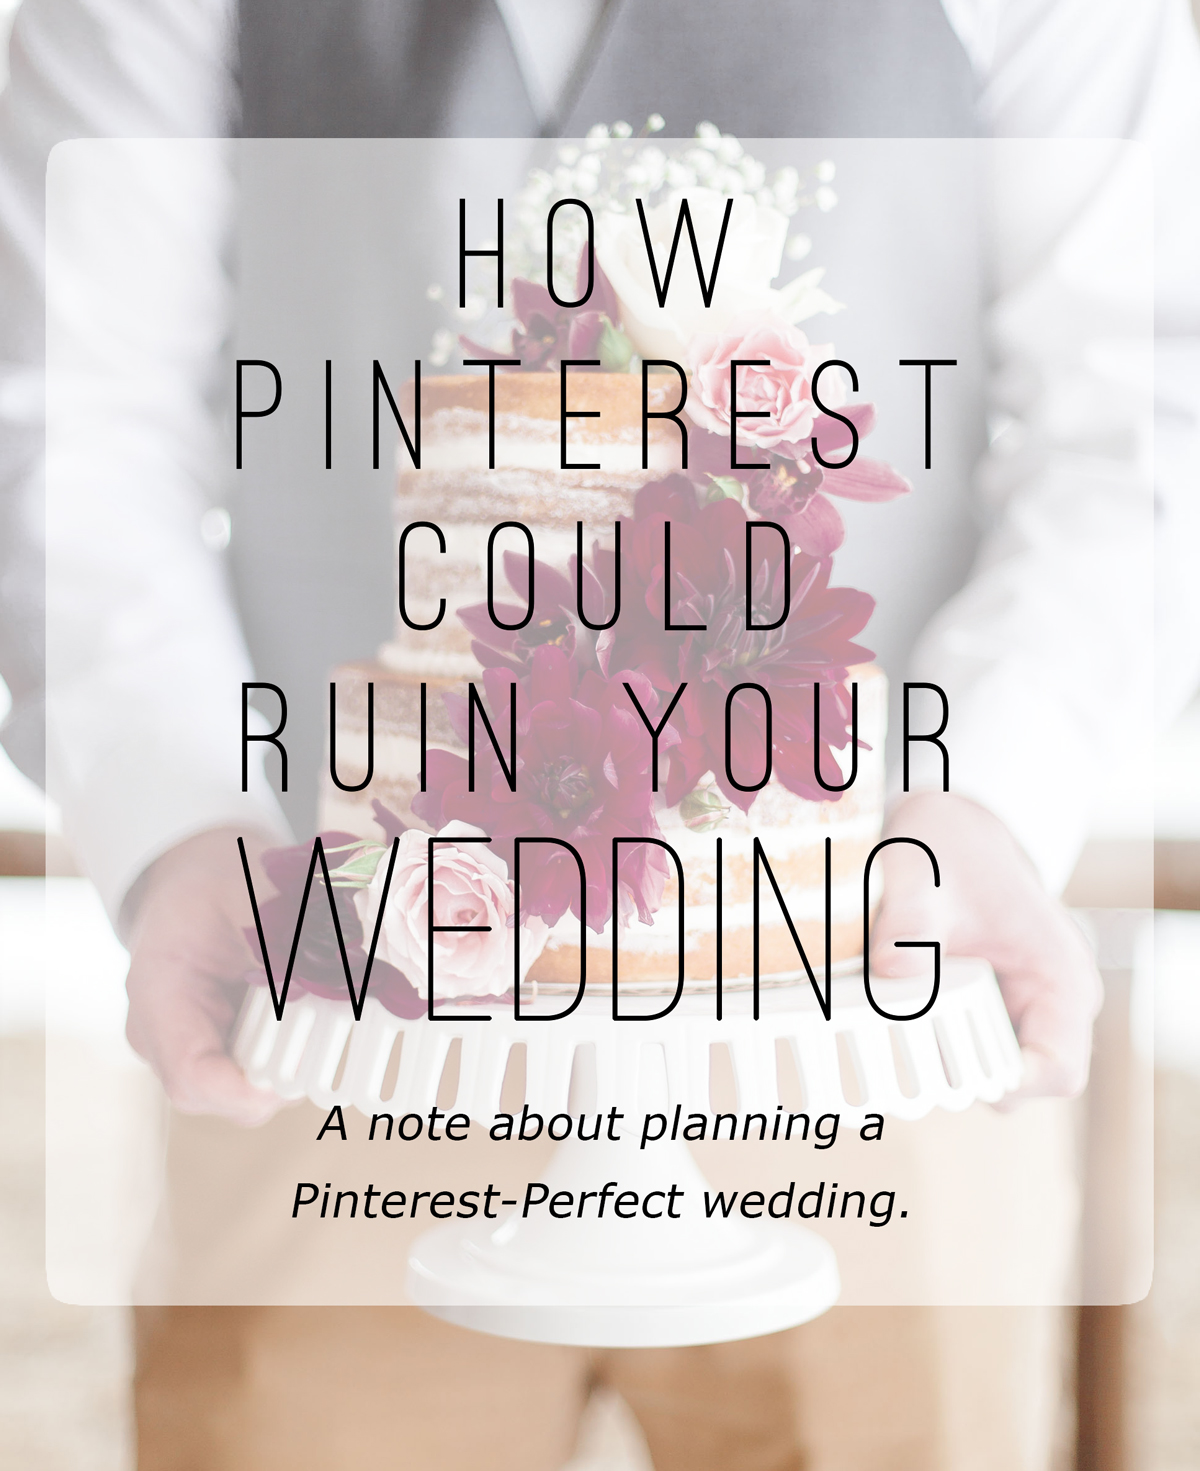 A note about planning a pinterest-perfect wedding